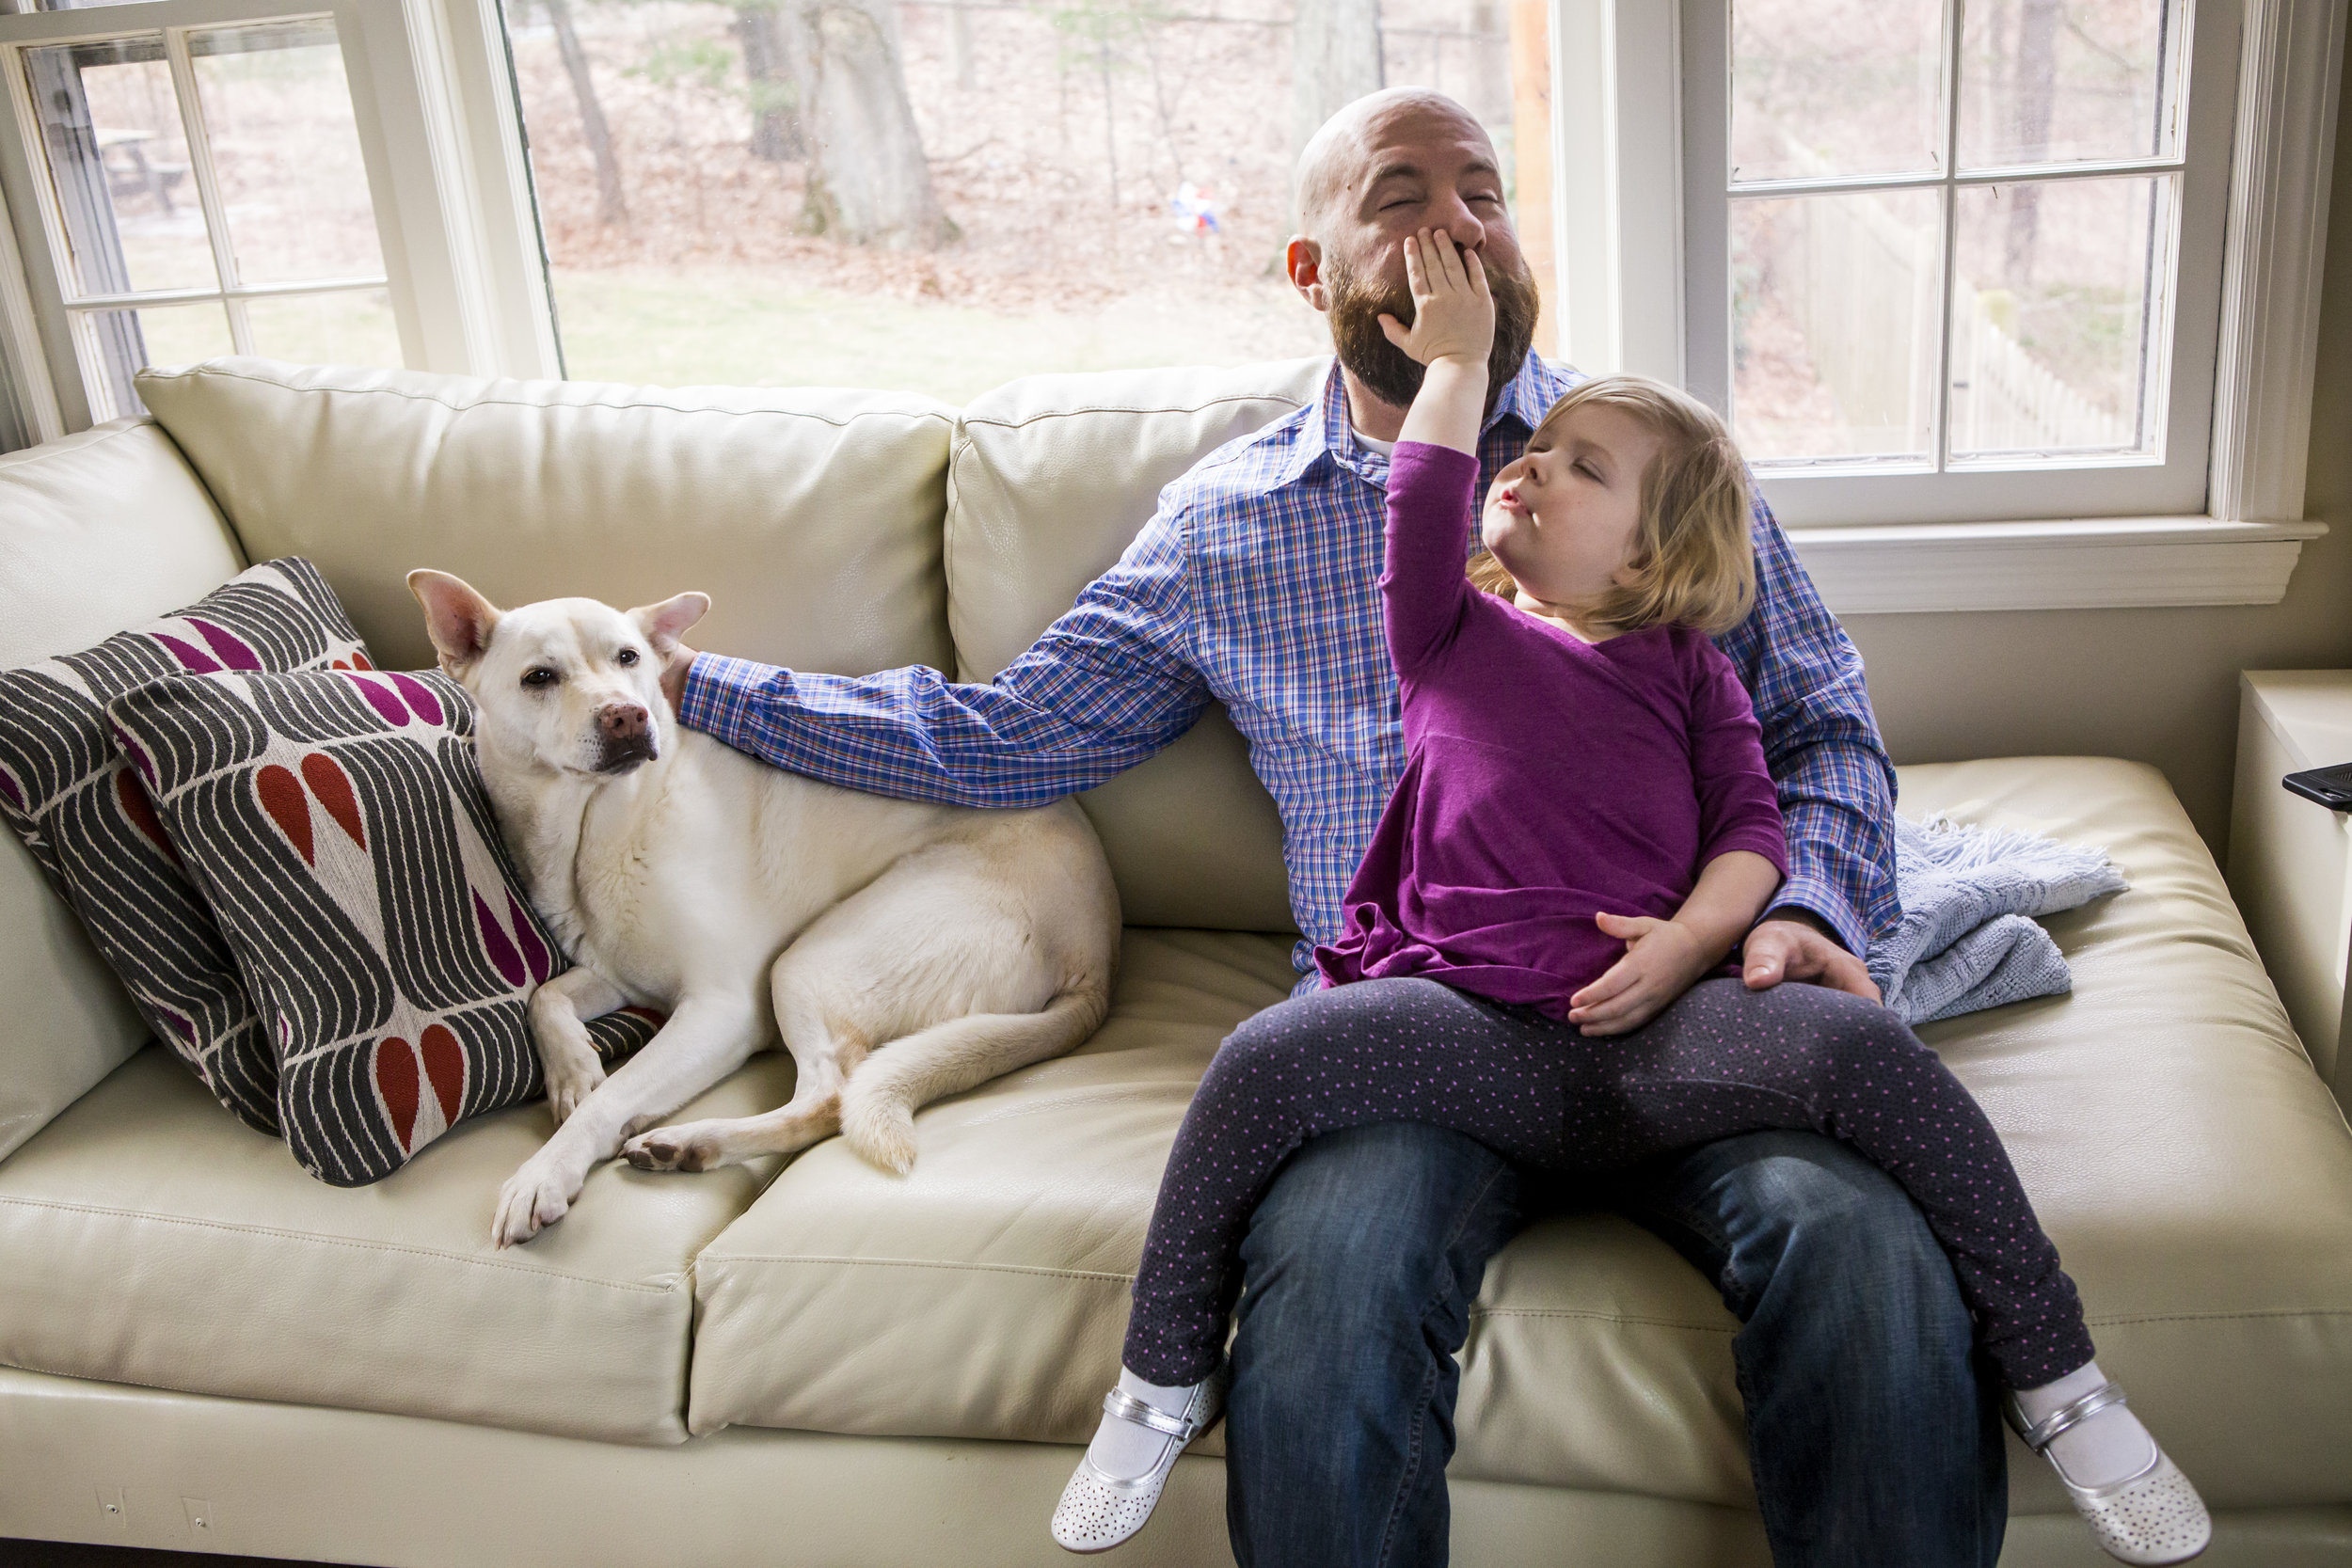 New haven family photo with girl, dad and dog on couch in front of window during in home family photography session.